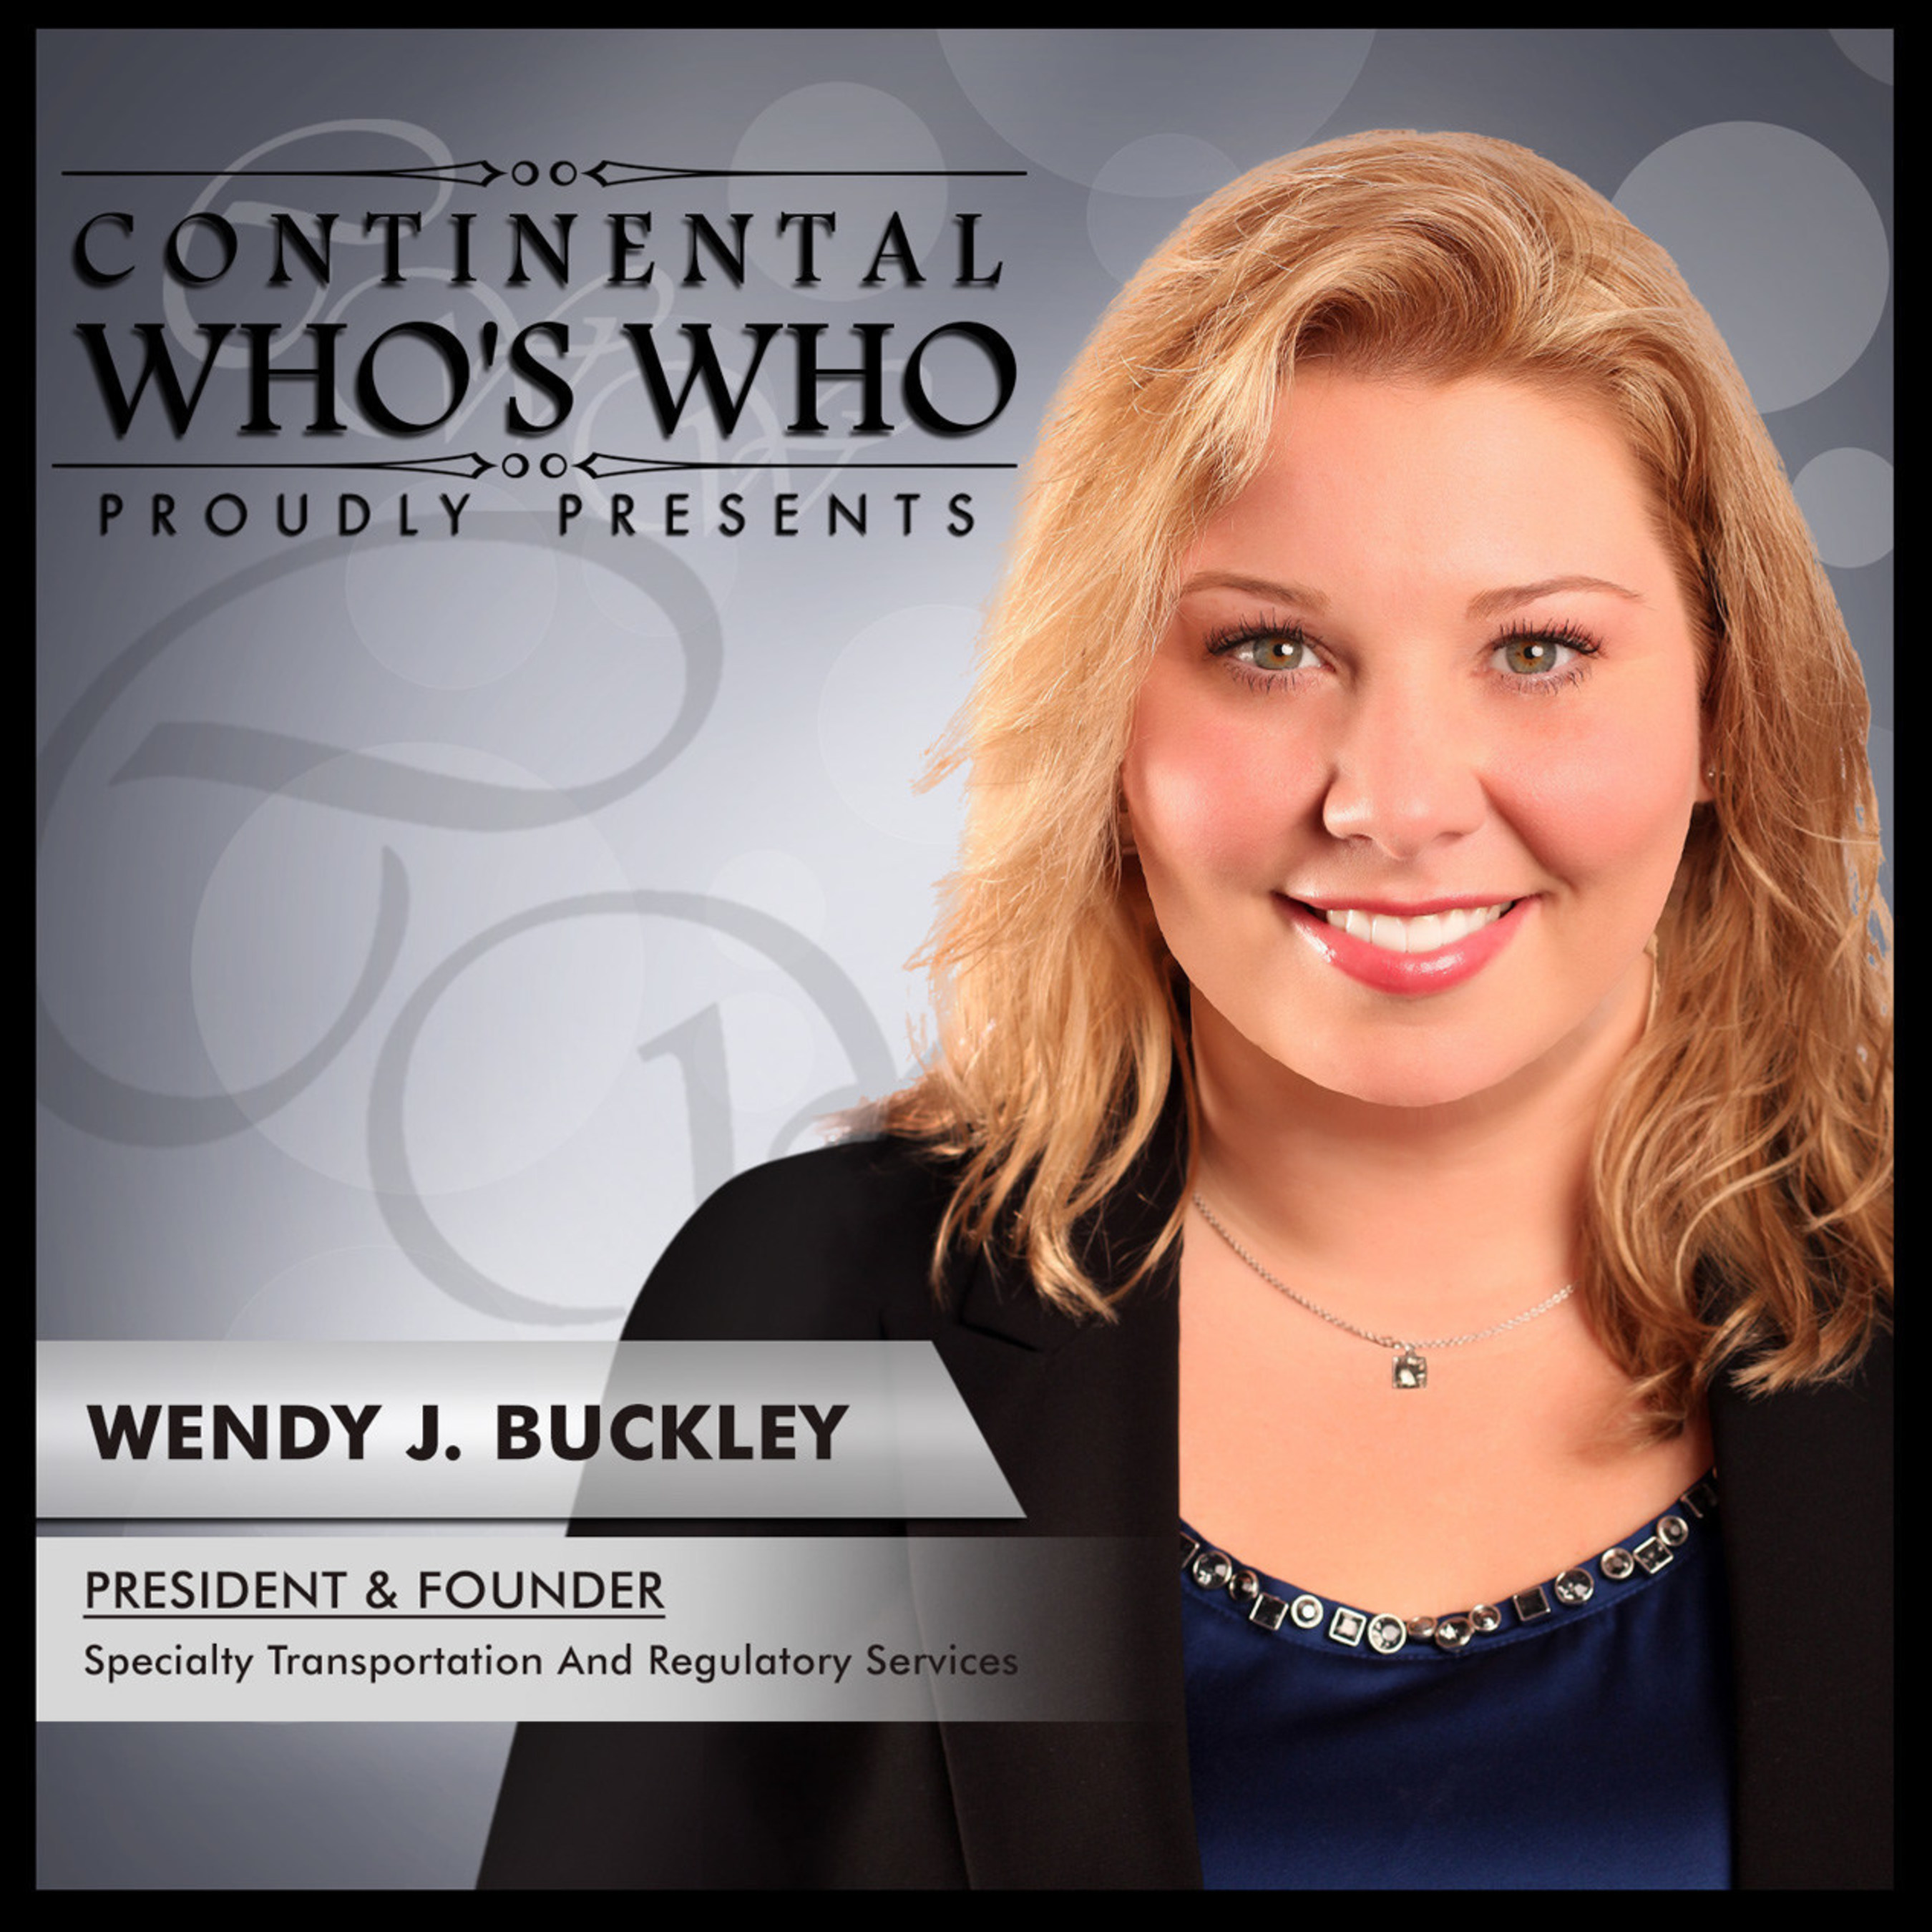 Wendy J. Buckley is recognized by Continental Who's Who among Pinnacle Professionals in the field of Environmental Services.